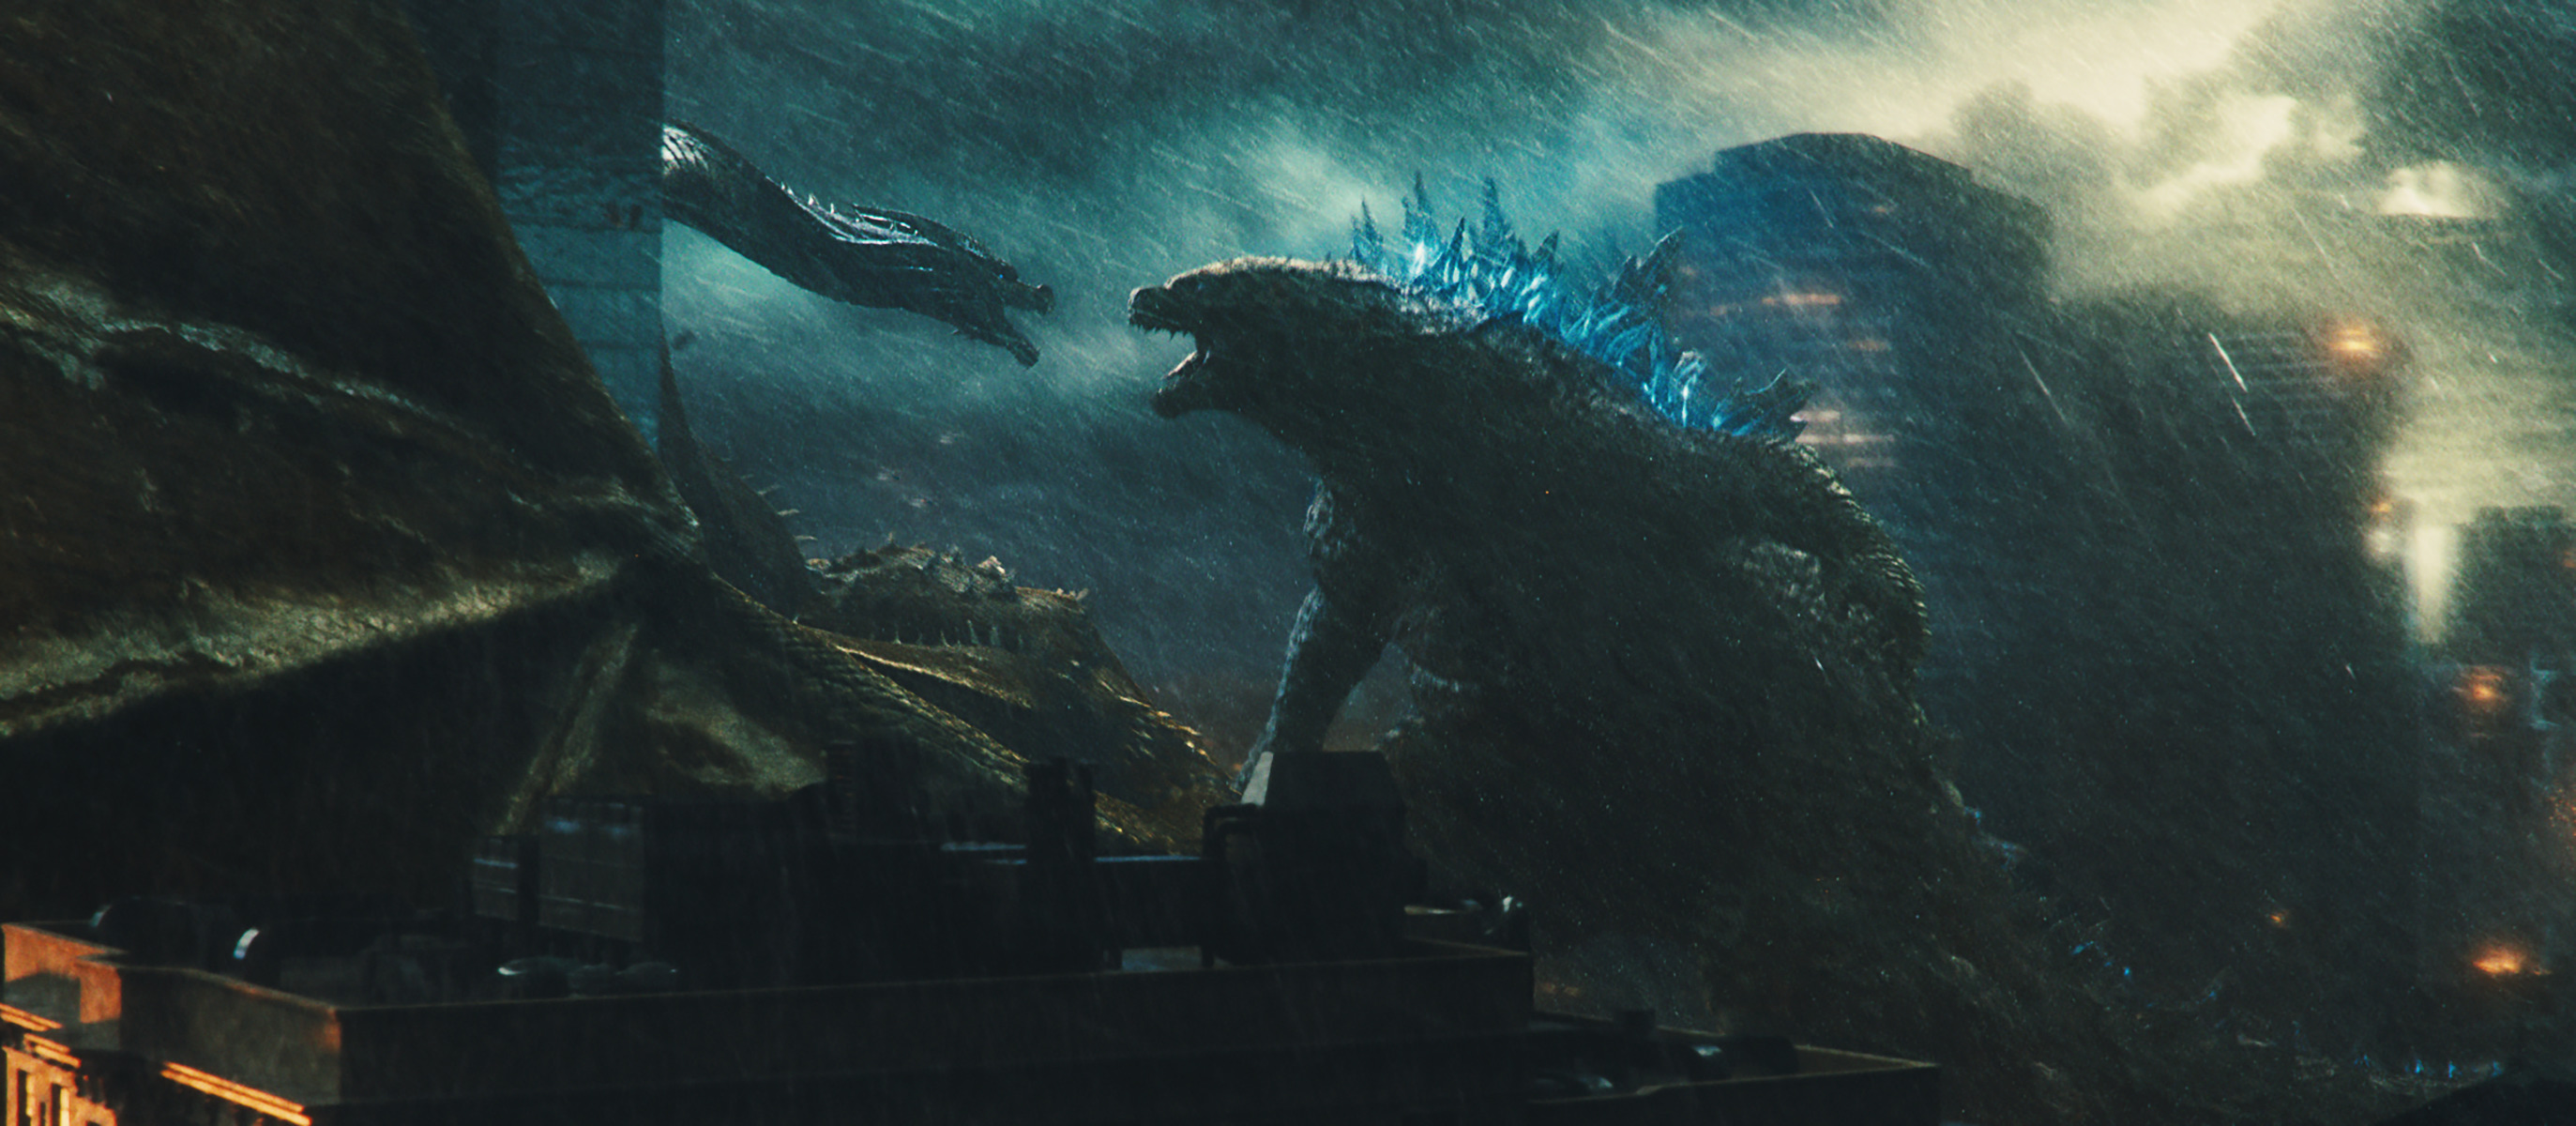 Blu-ray/DVD Review: GODZILLA: KING OF THE MONSTERS